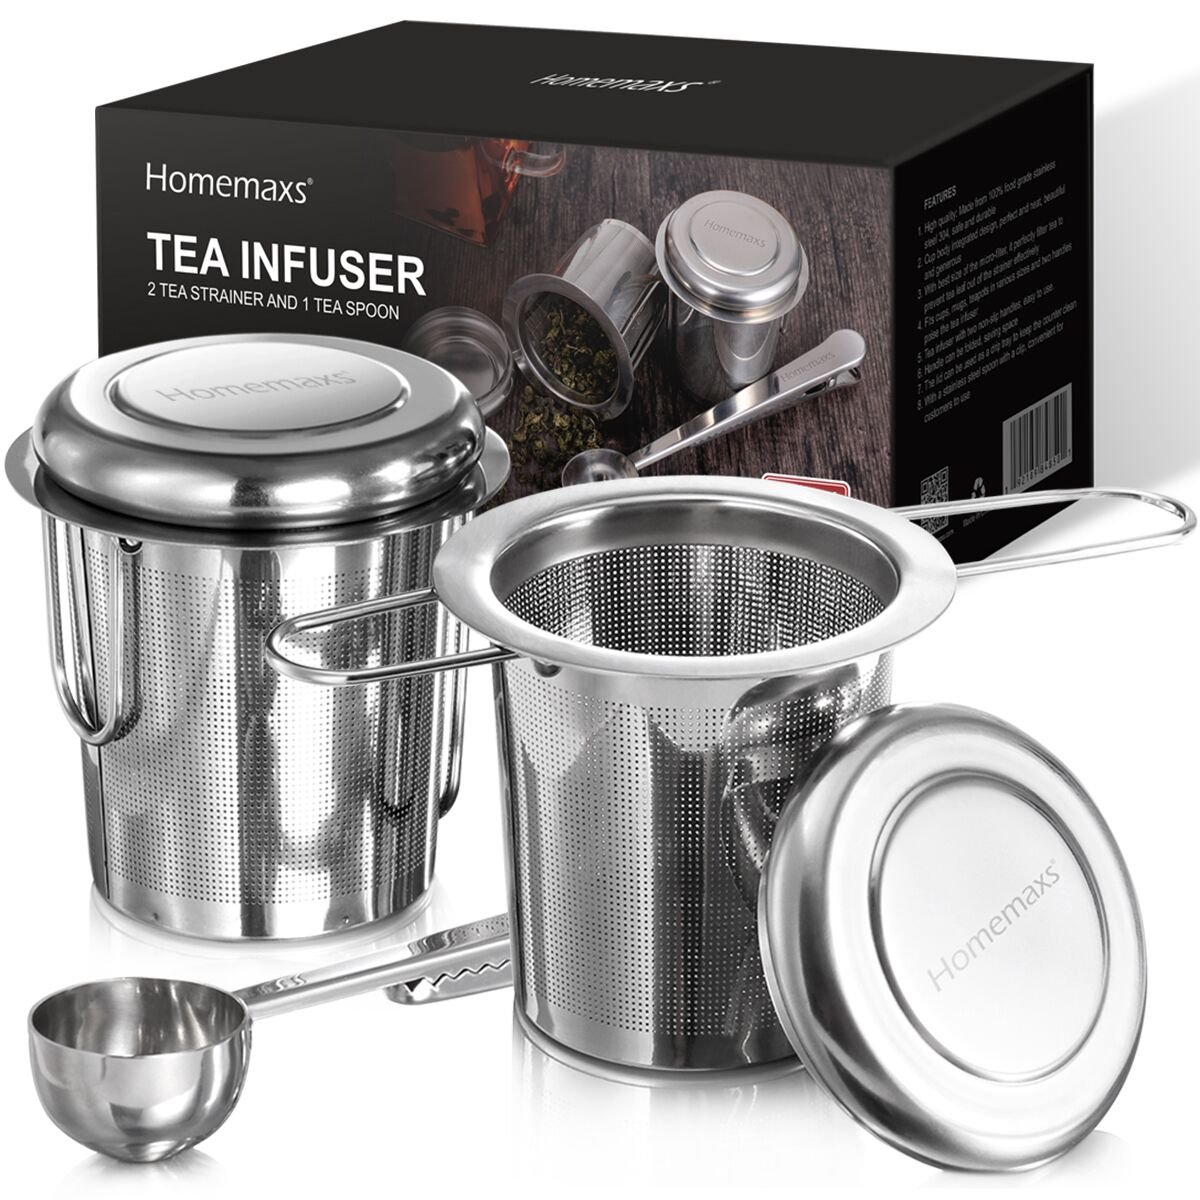 Homemaxs Tea Infuser 304 Stainless Steel Including 2 Mesh Tea Strainer & 1 Scoop with Double Folding Handles for Hanging on Teapots, Mugs, Cups [Energy Class A+]